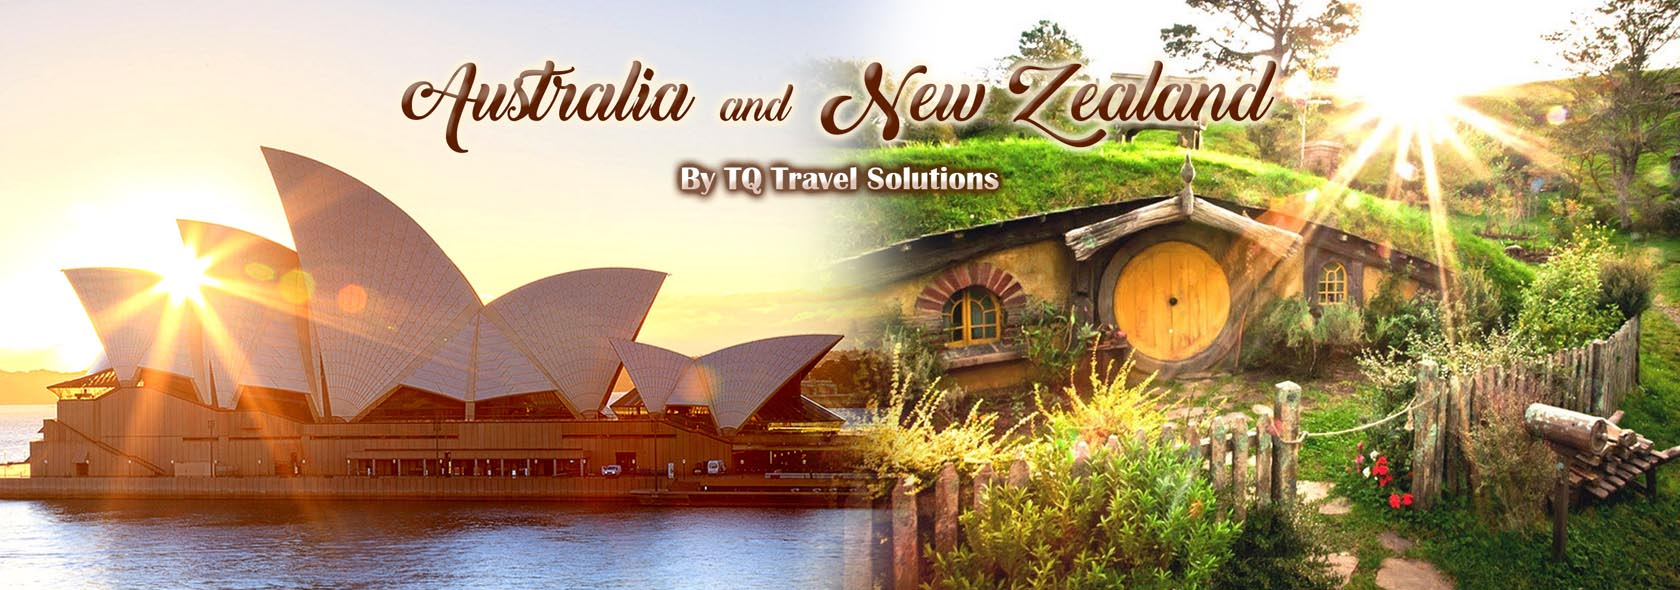 Tq Travel Solutions Australia And New Zealand Tour Packages